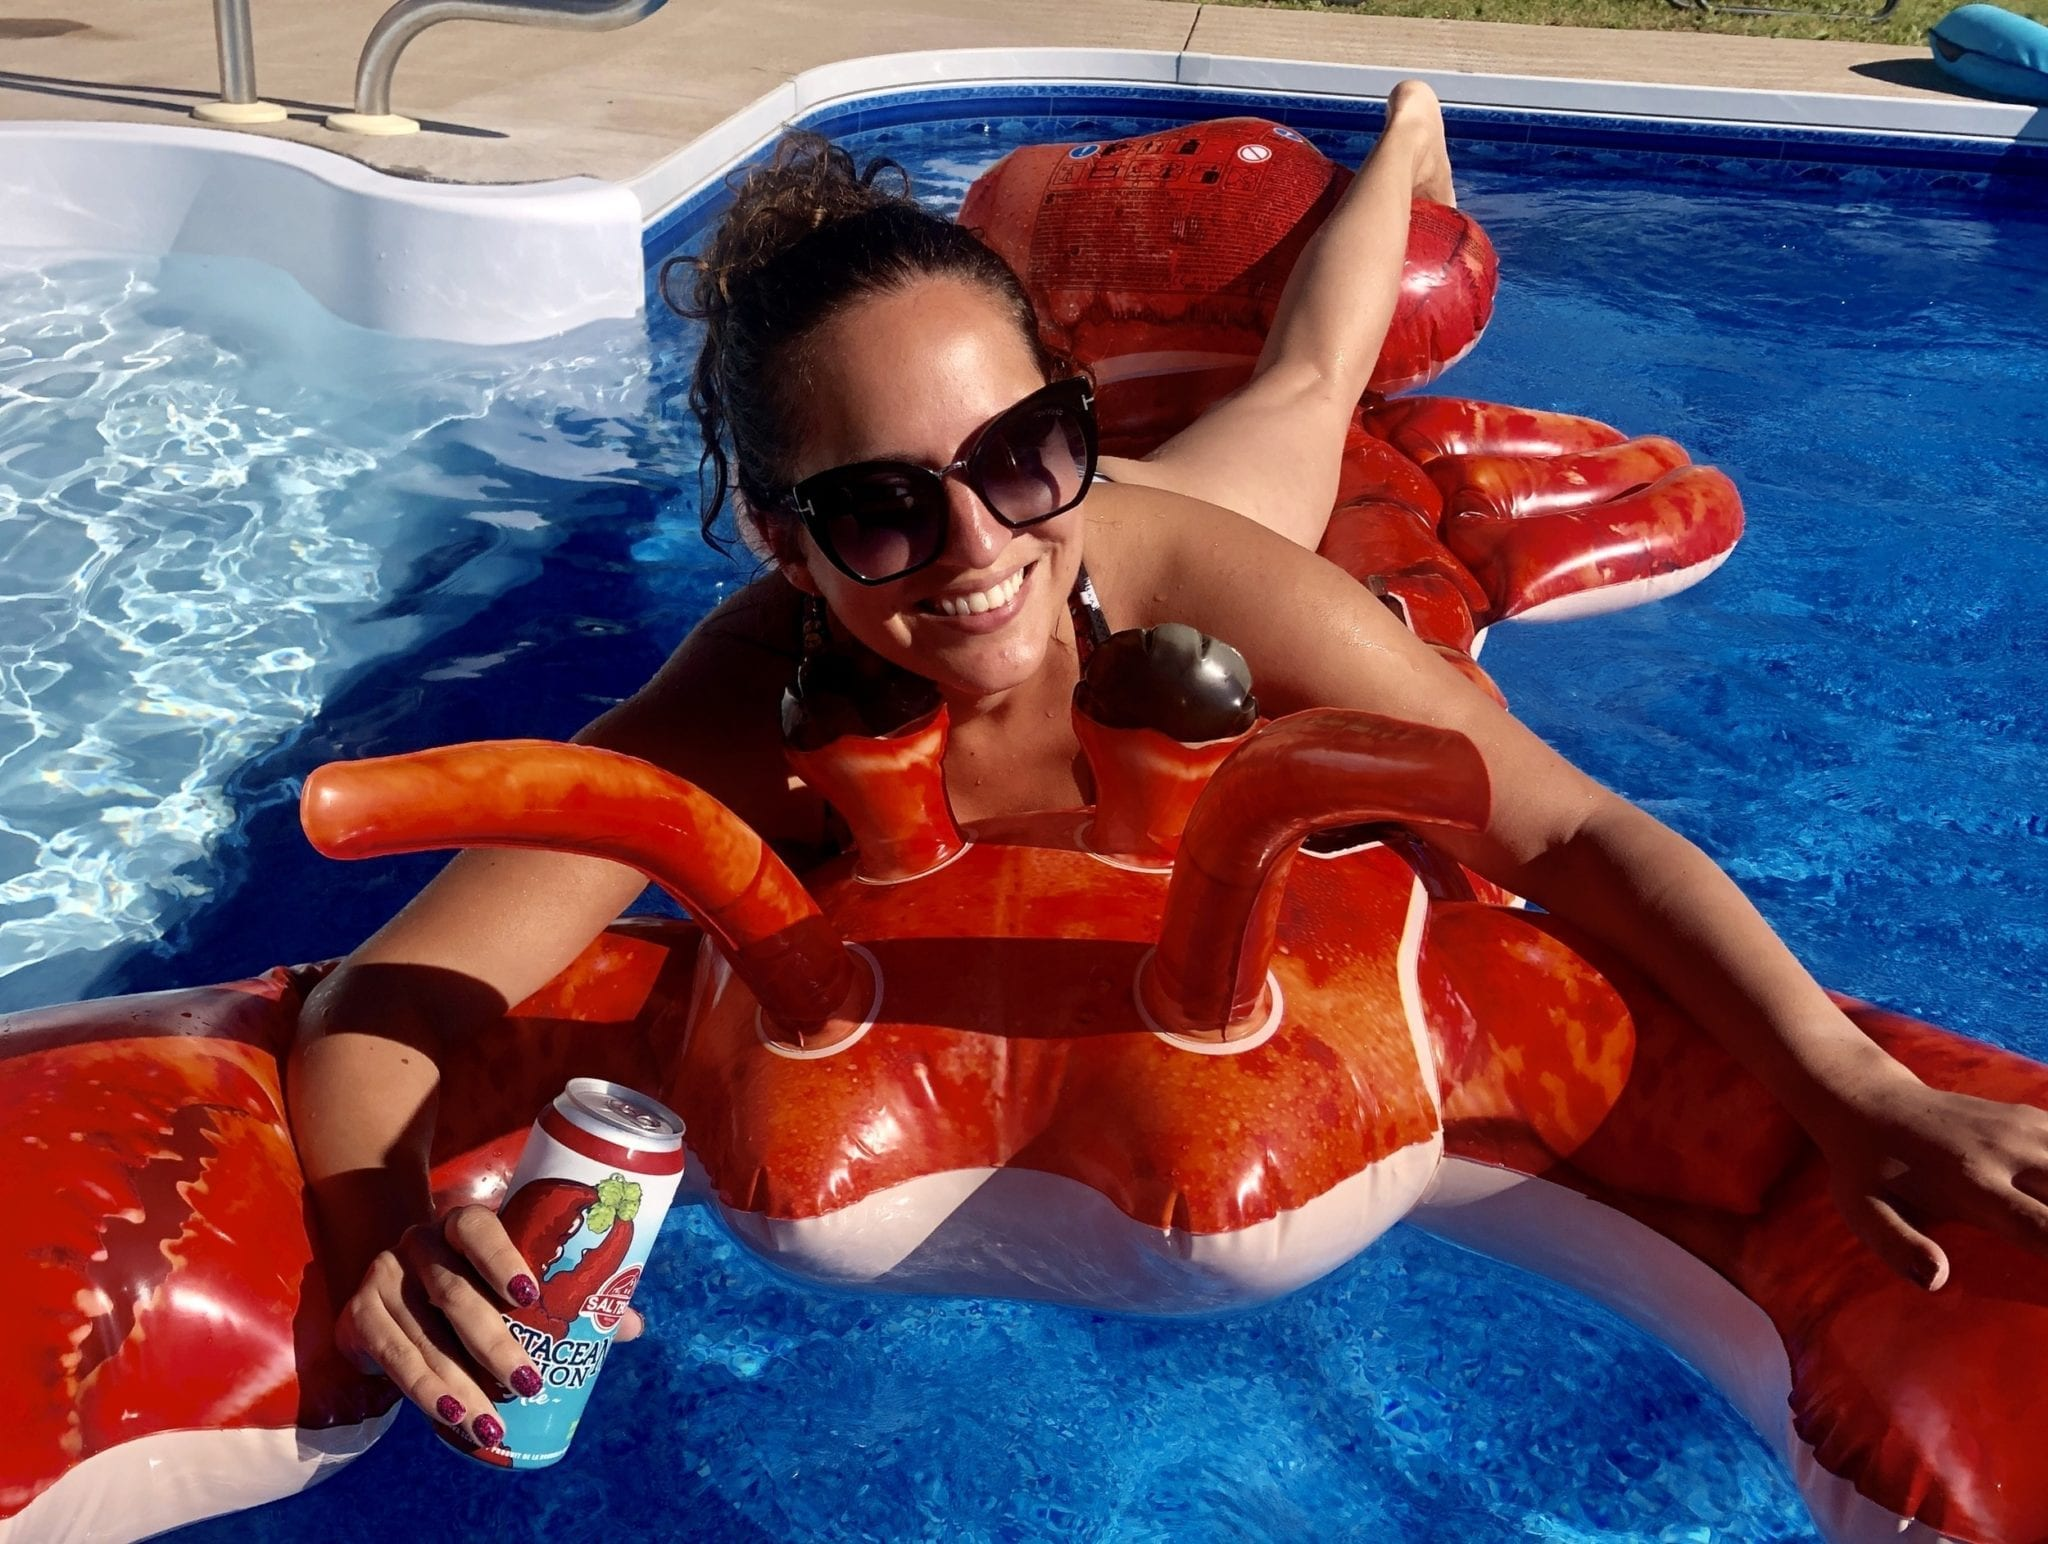 Kate relaxes on a lobster-shaped raft in a pool, holding a lobster-flavored beer.